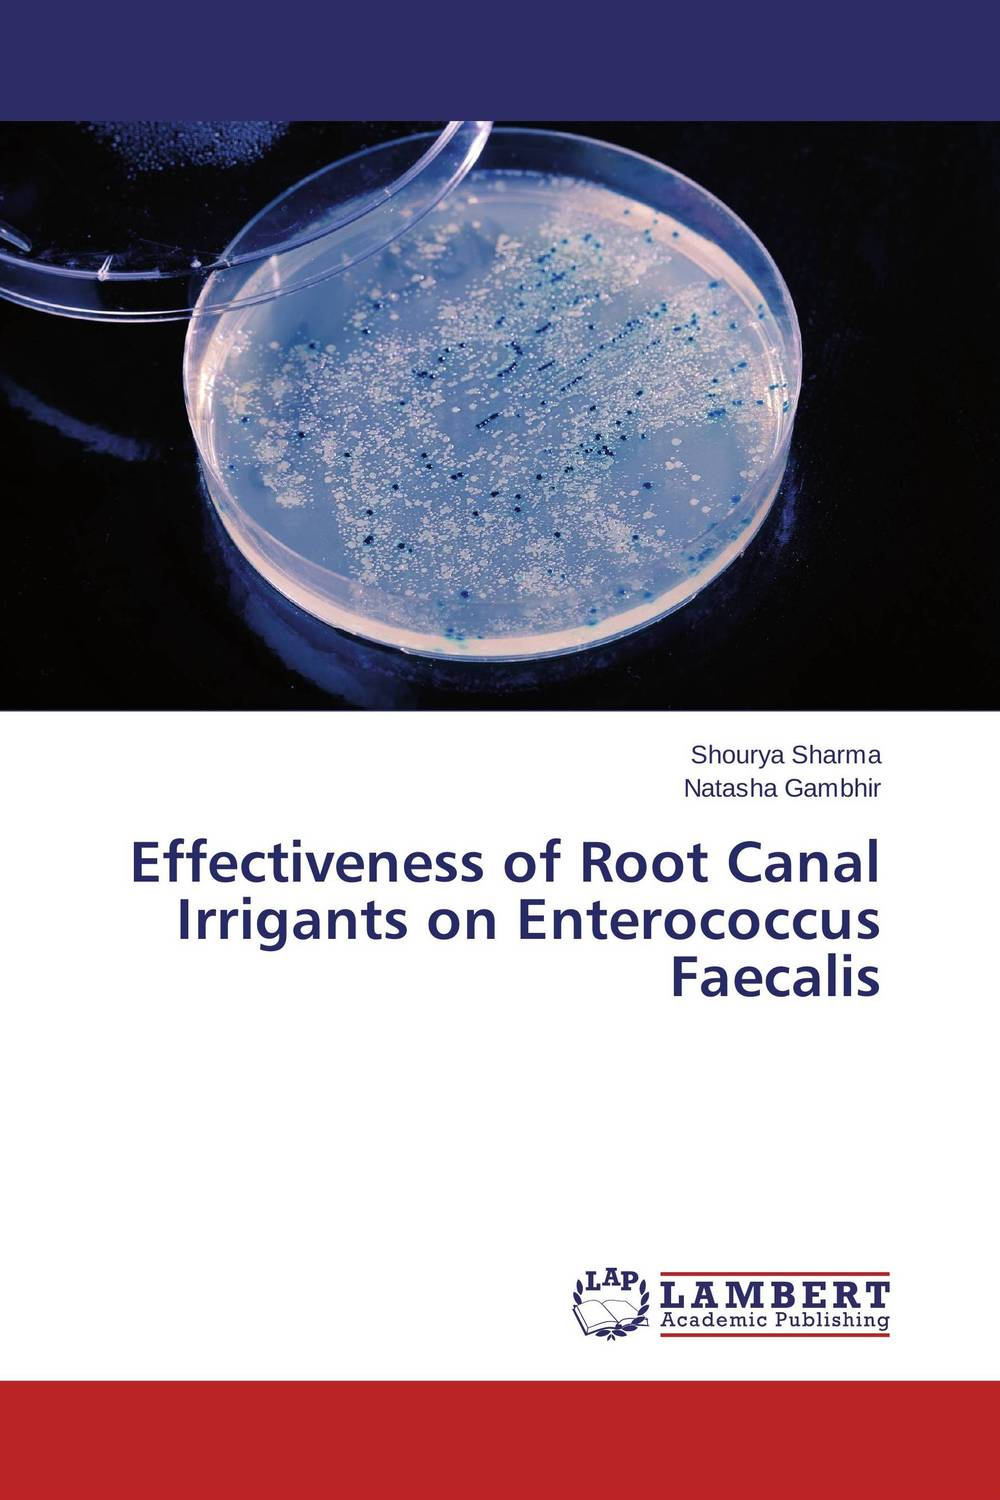 Effectiveness of Root Canal Irrigants on Enterococcus Faecalis i d rather have a root canal than do cold calling